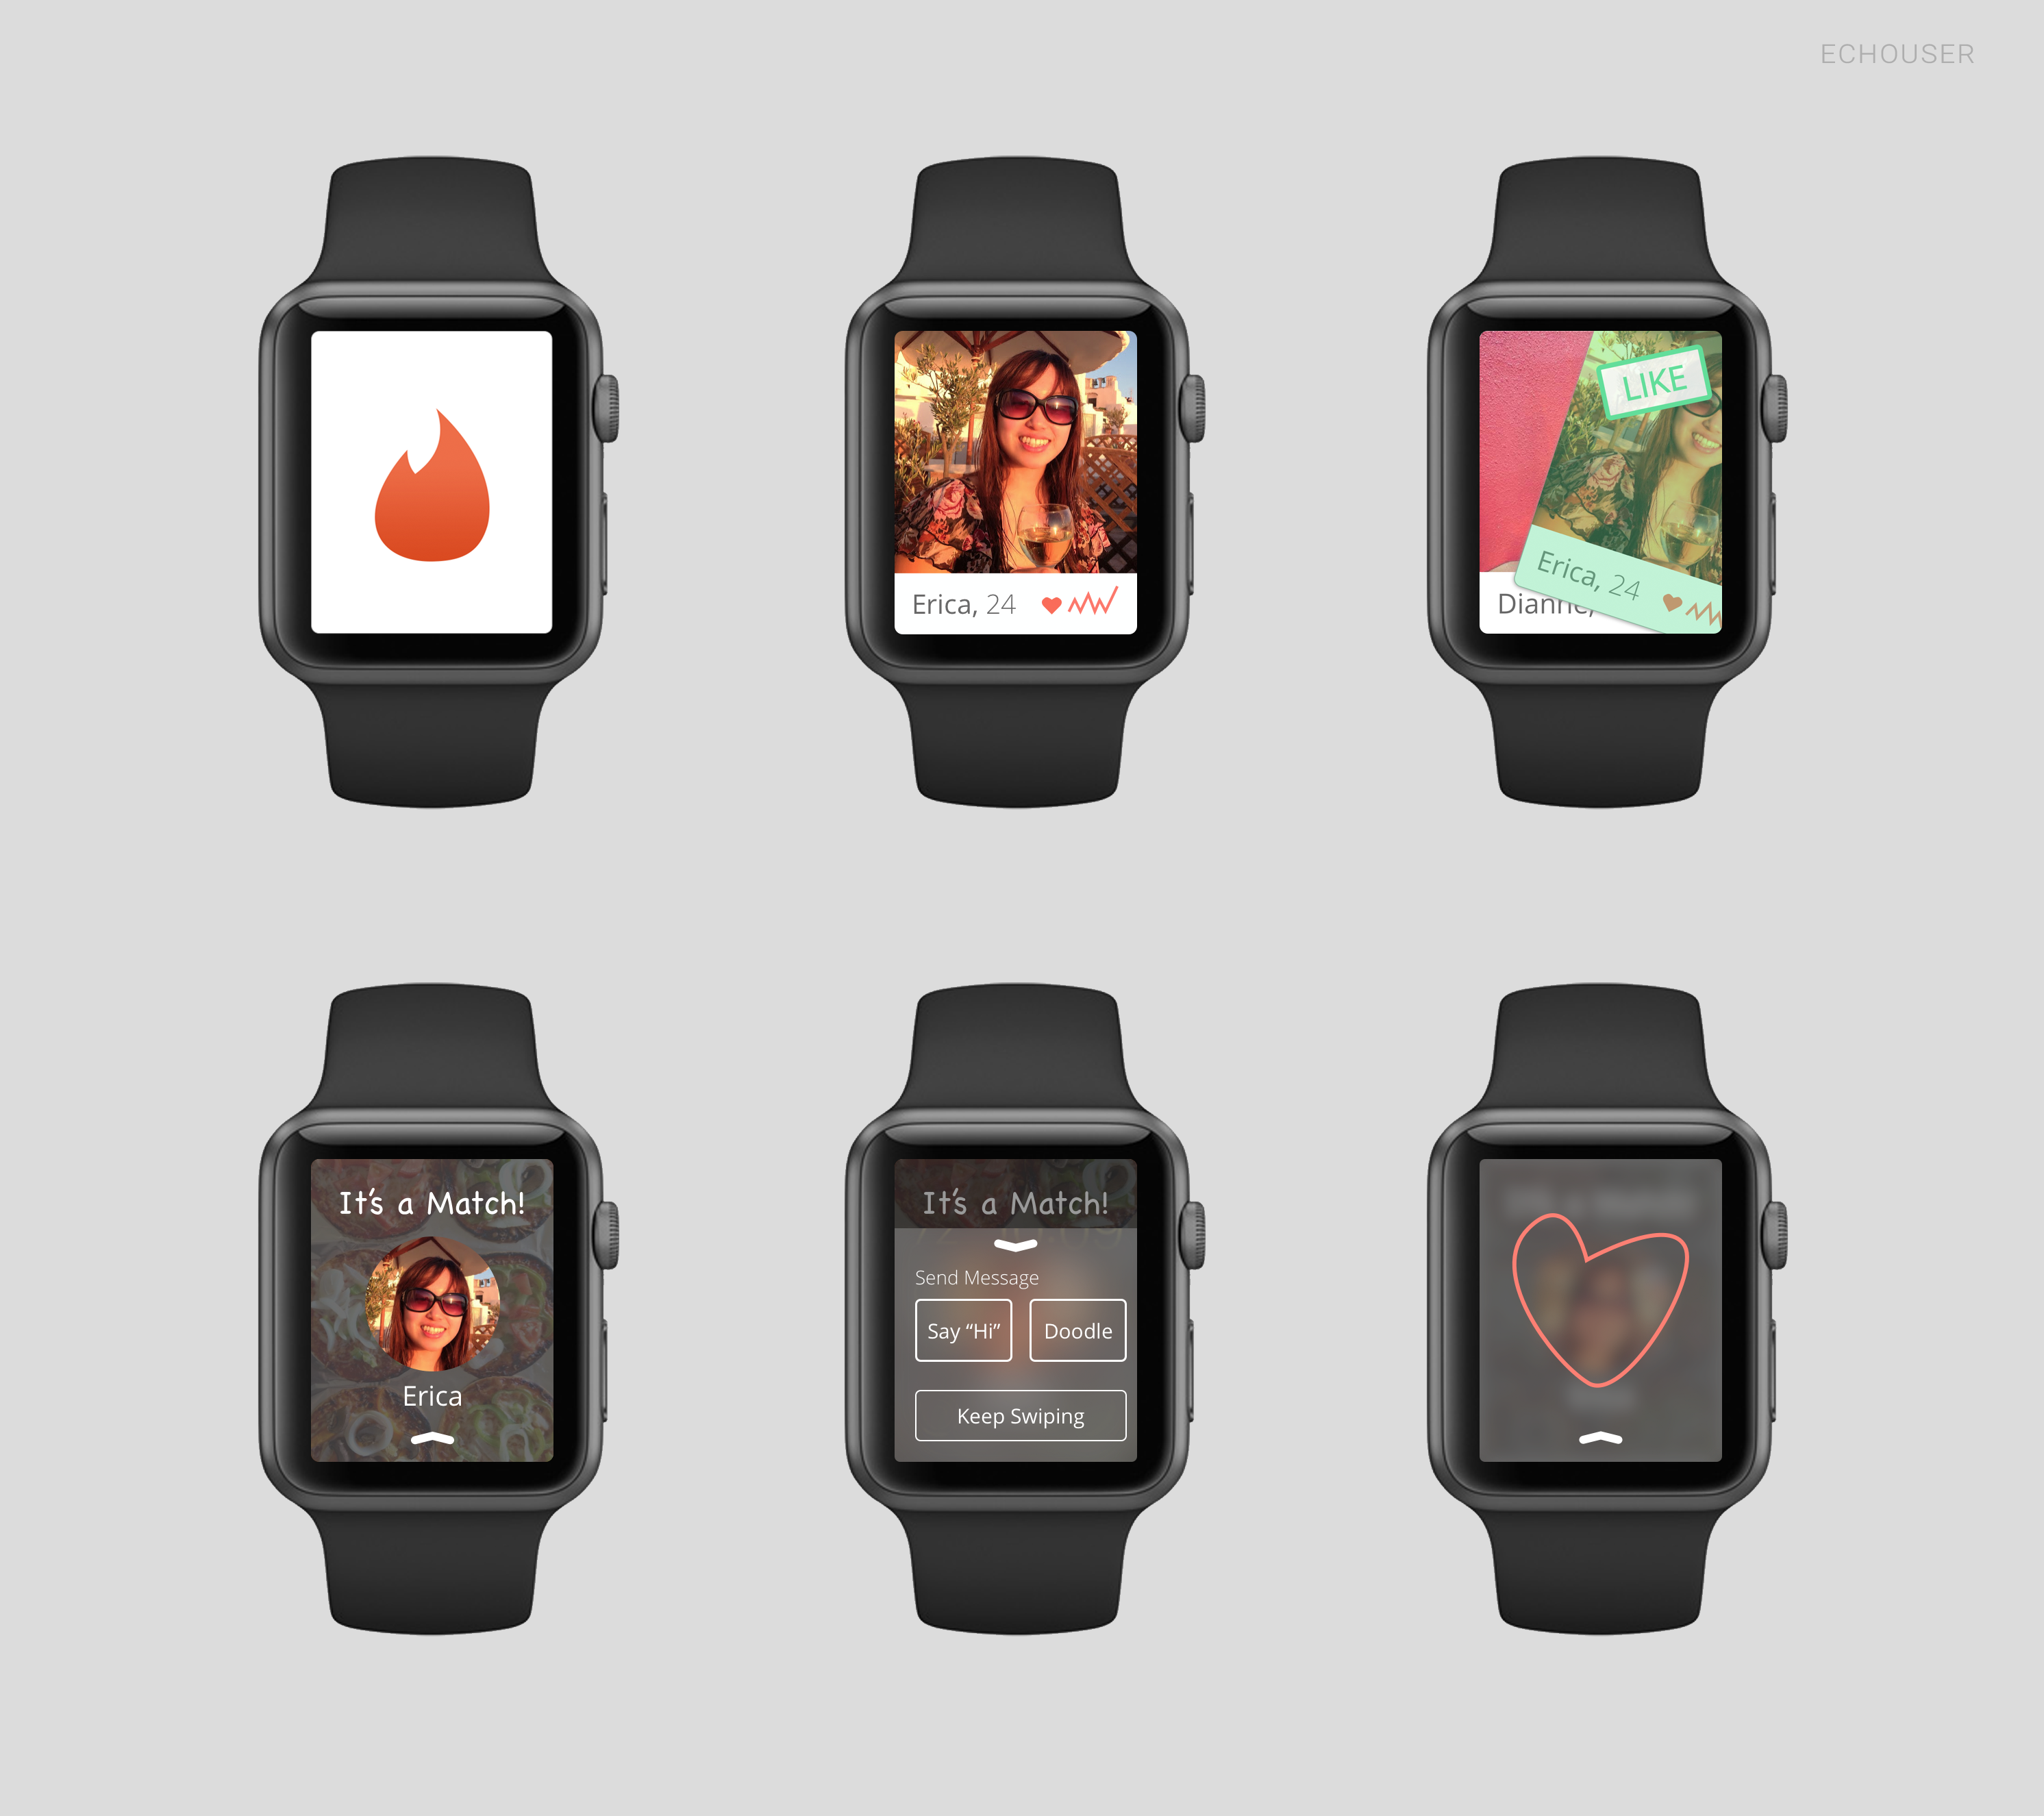 Tinder on Apple Watch Concept Design Follow me for